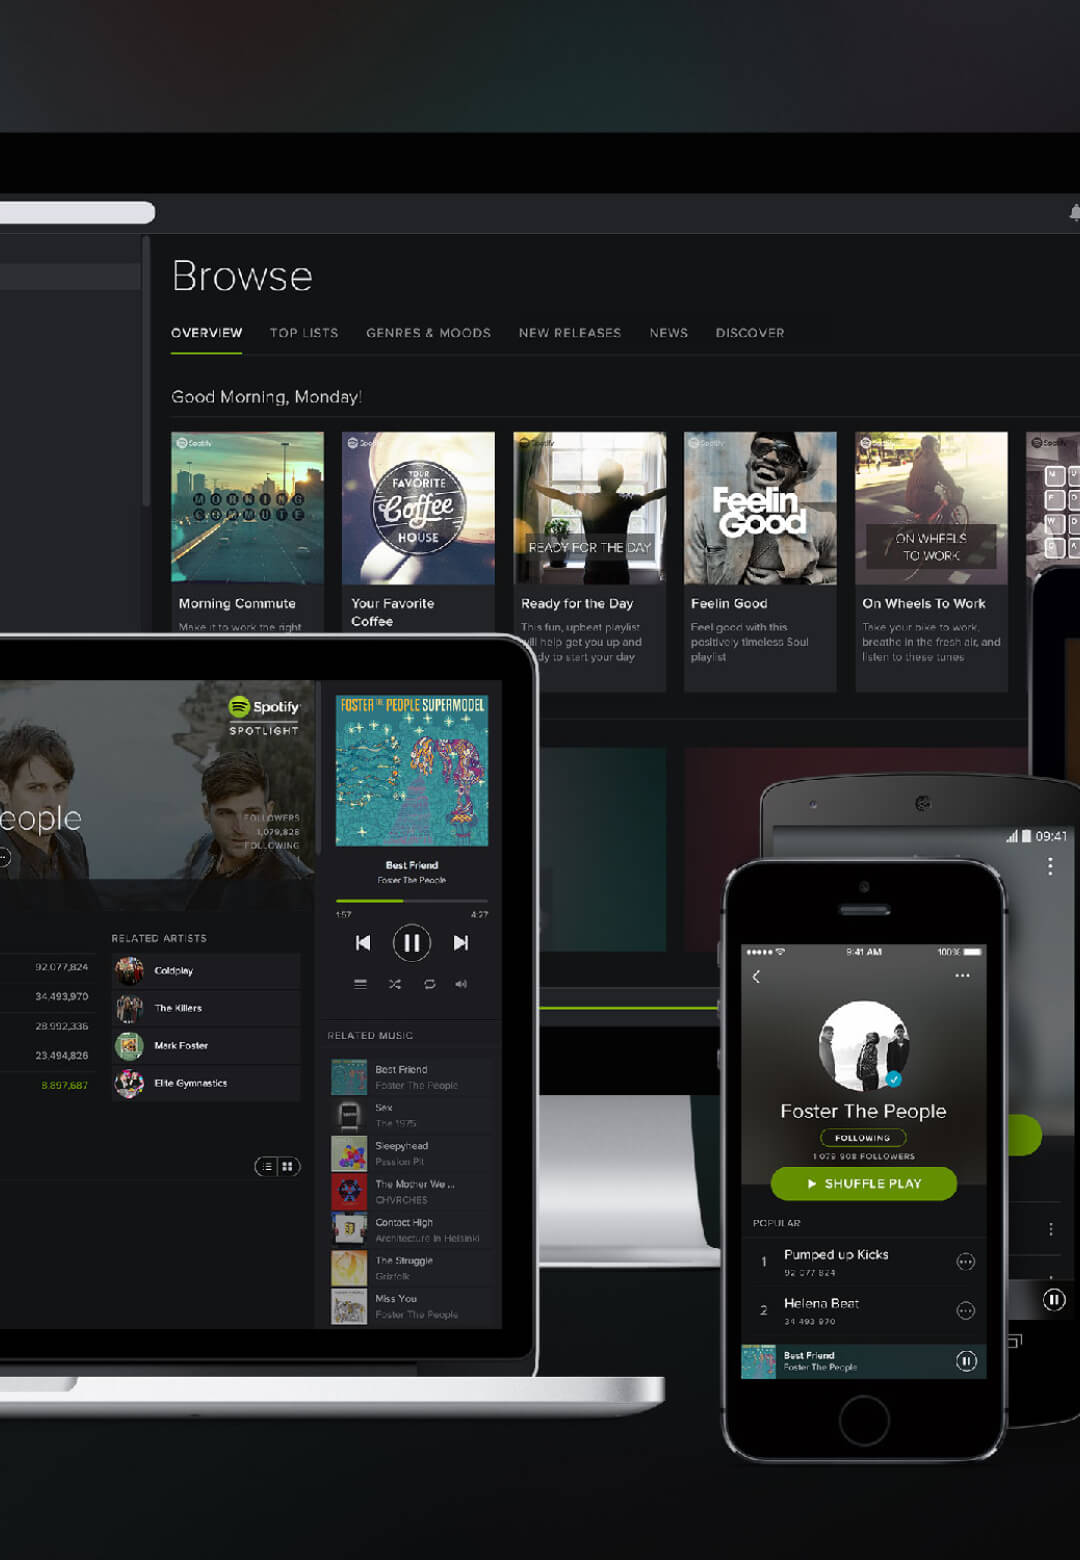 'Collectively owned and rented' music on Spotify is now being taken for granted | Digital Legacies: Ownership by Julius Wiedemann | STIRworld